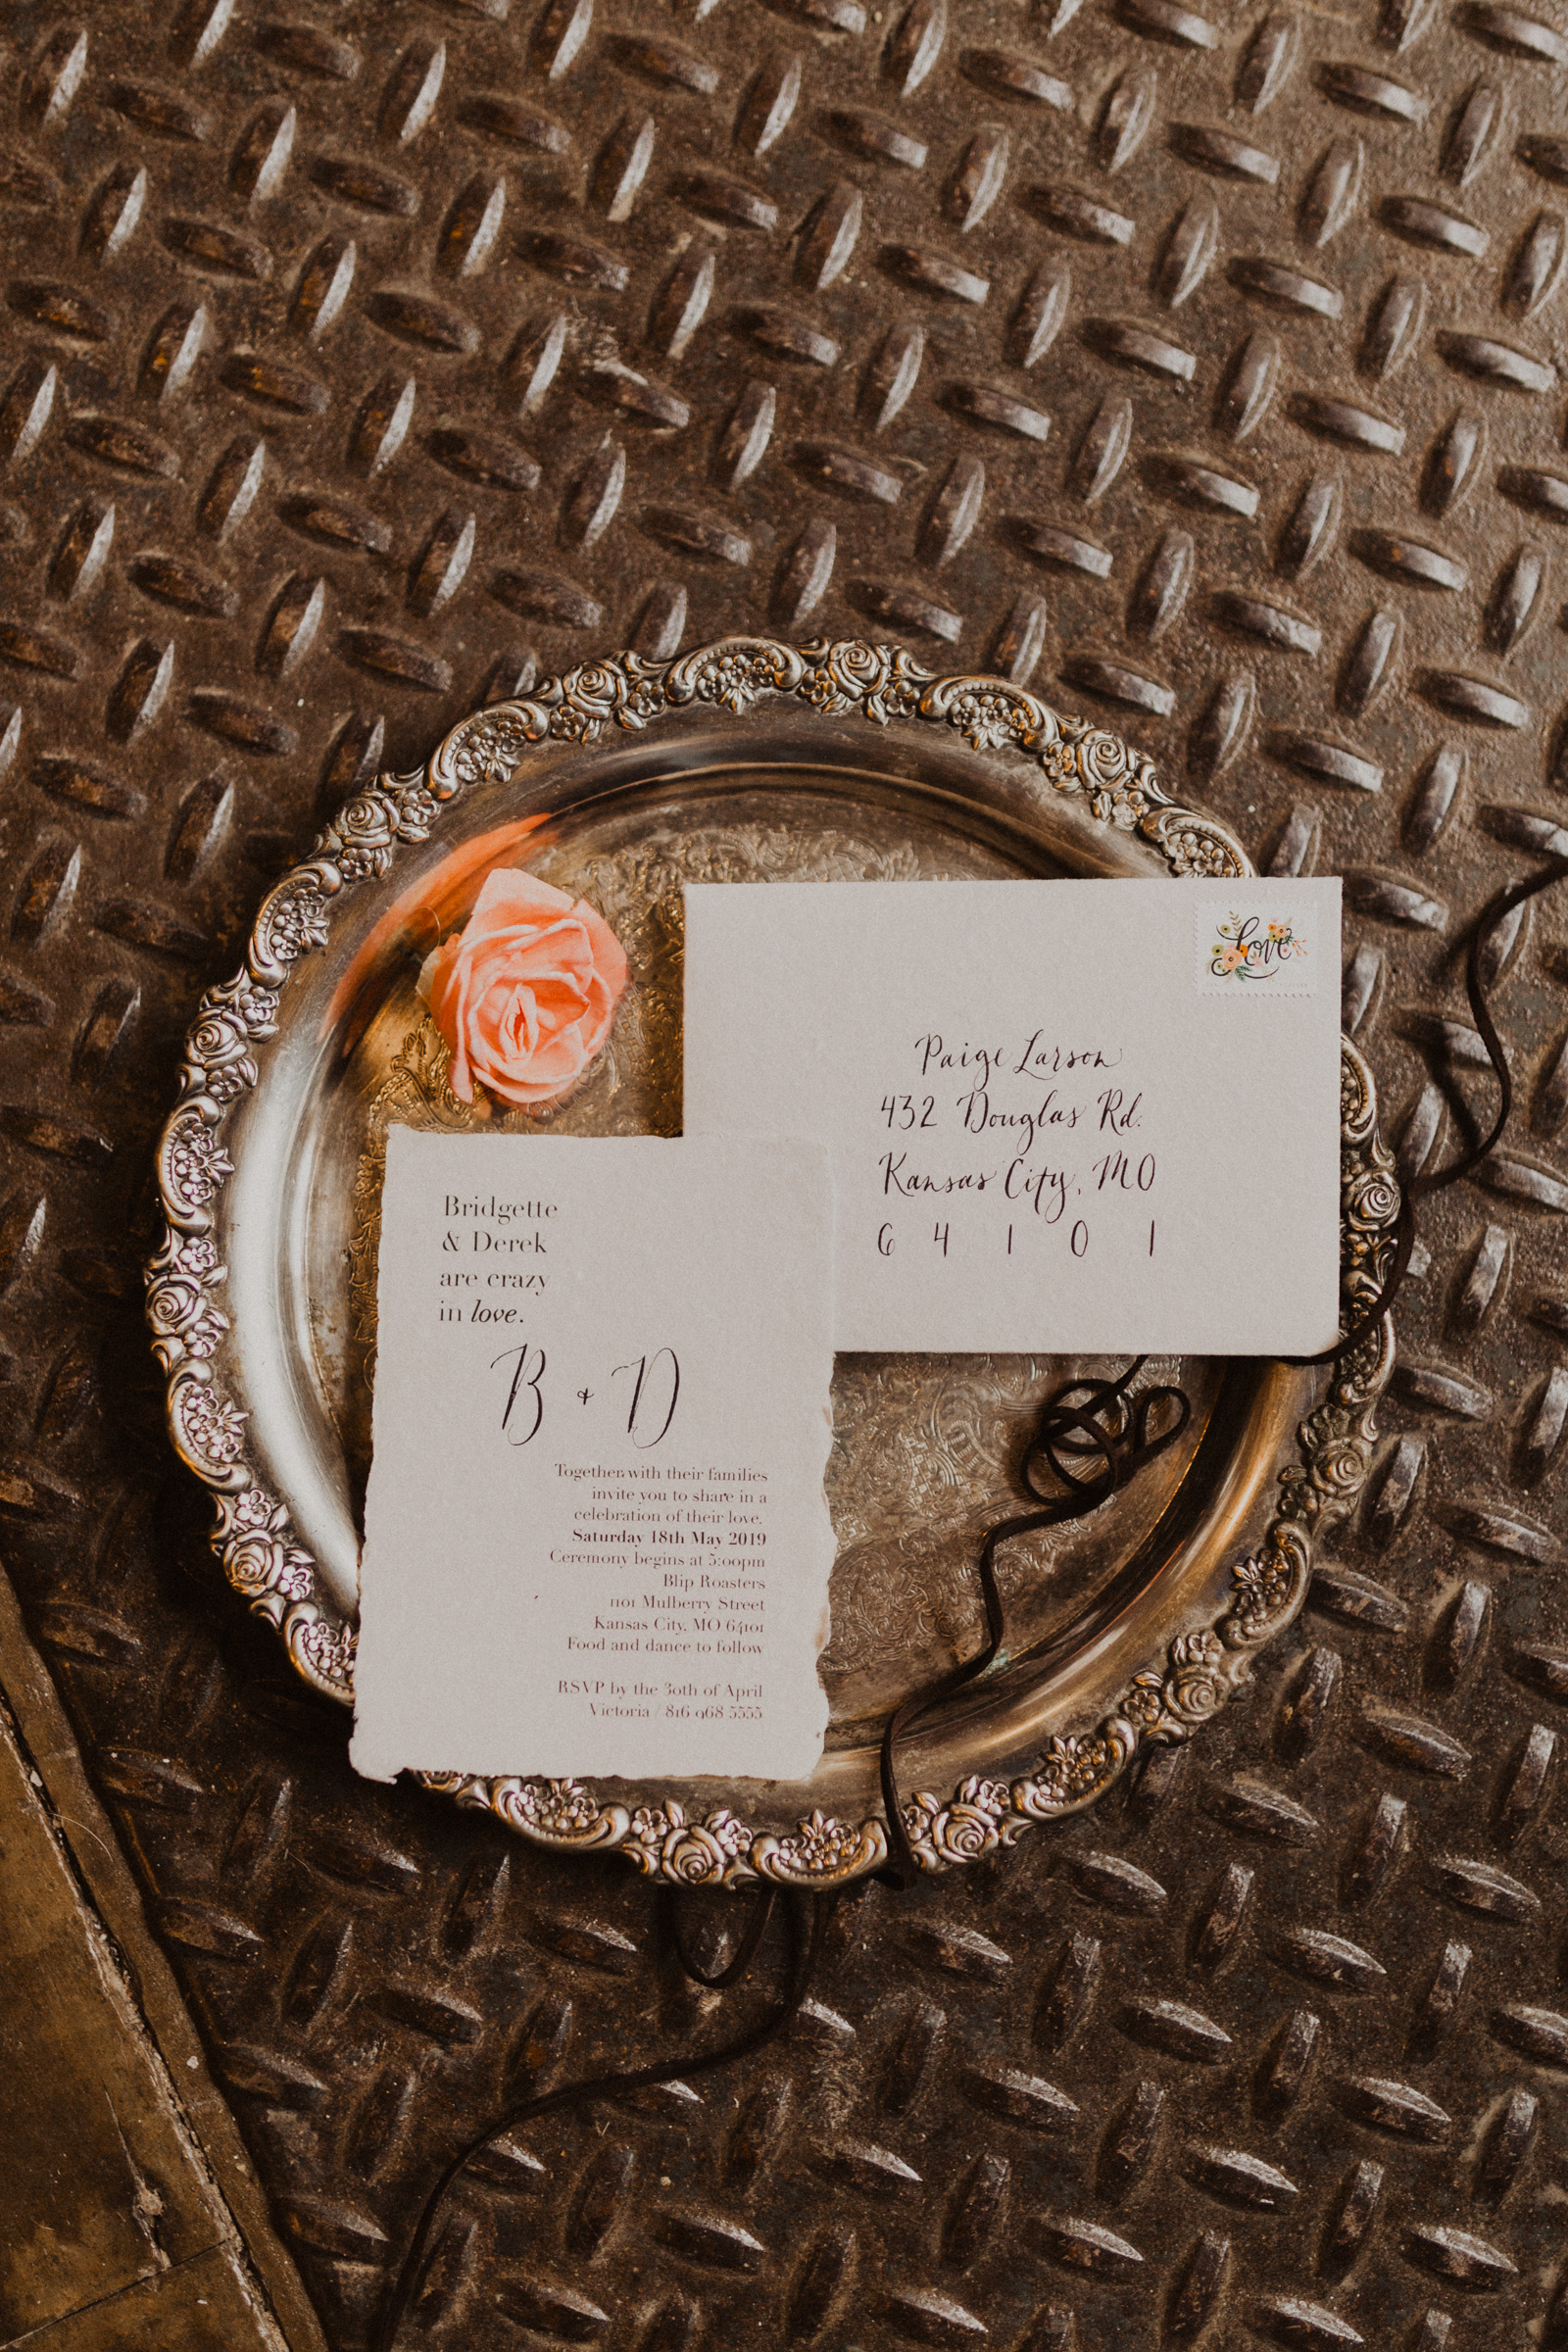 alyssa barletter photography styled shoot wedding inspiration kansas city west bottoms photographer motorcycle edgy intimate-1.jpg